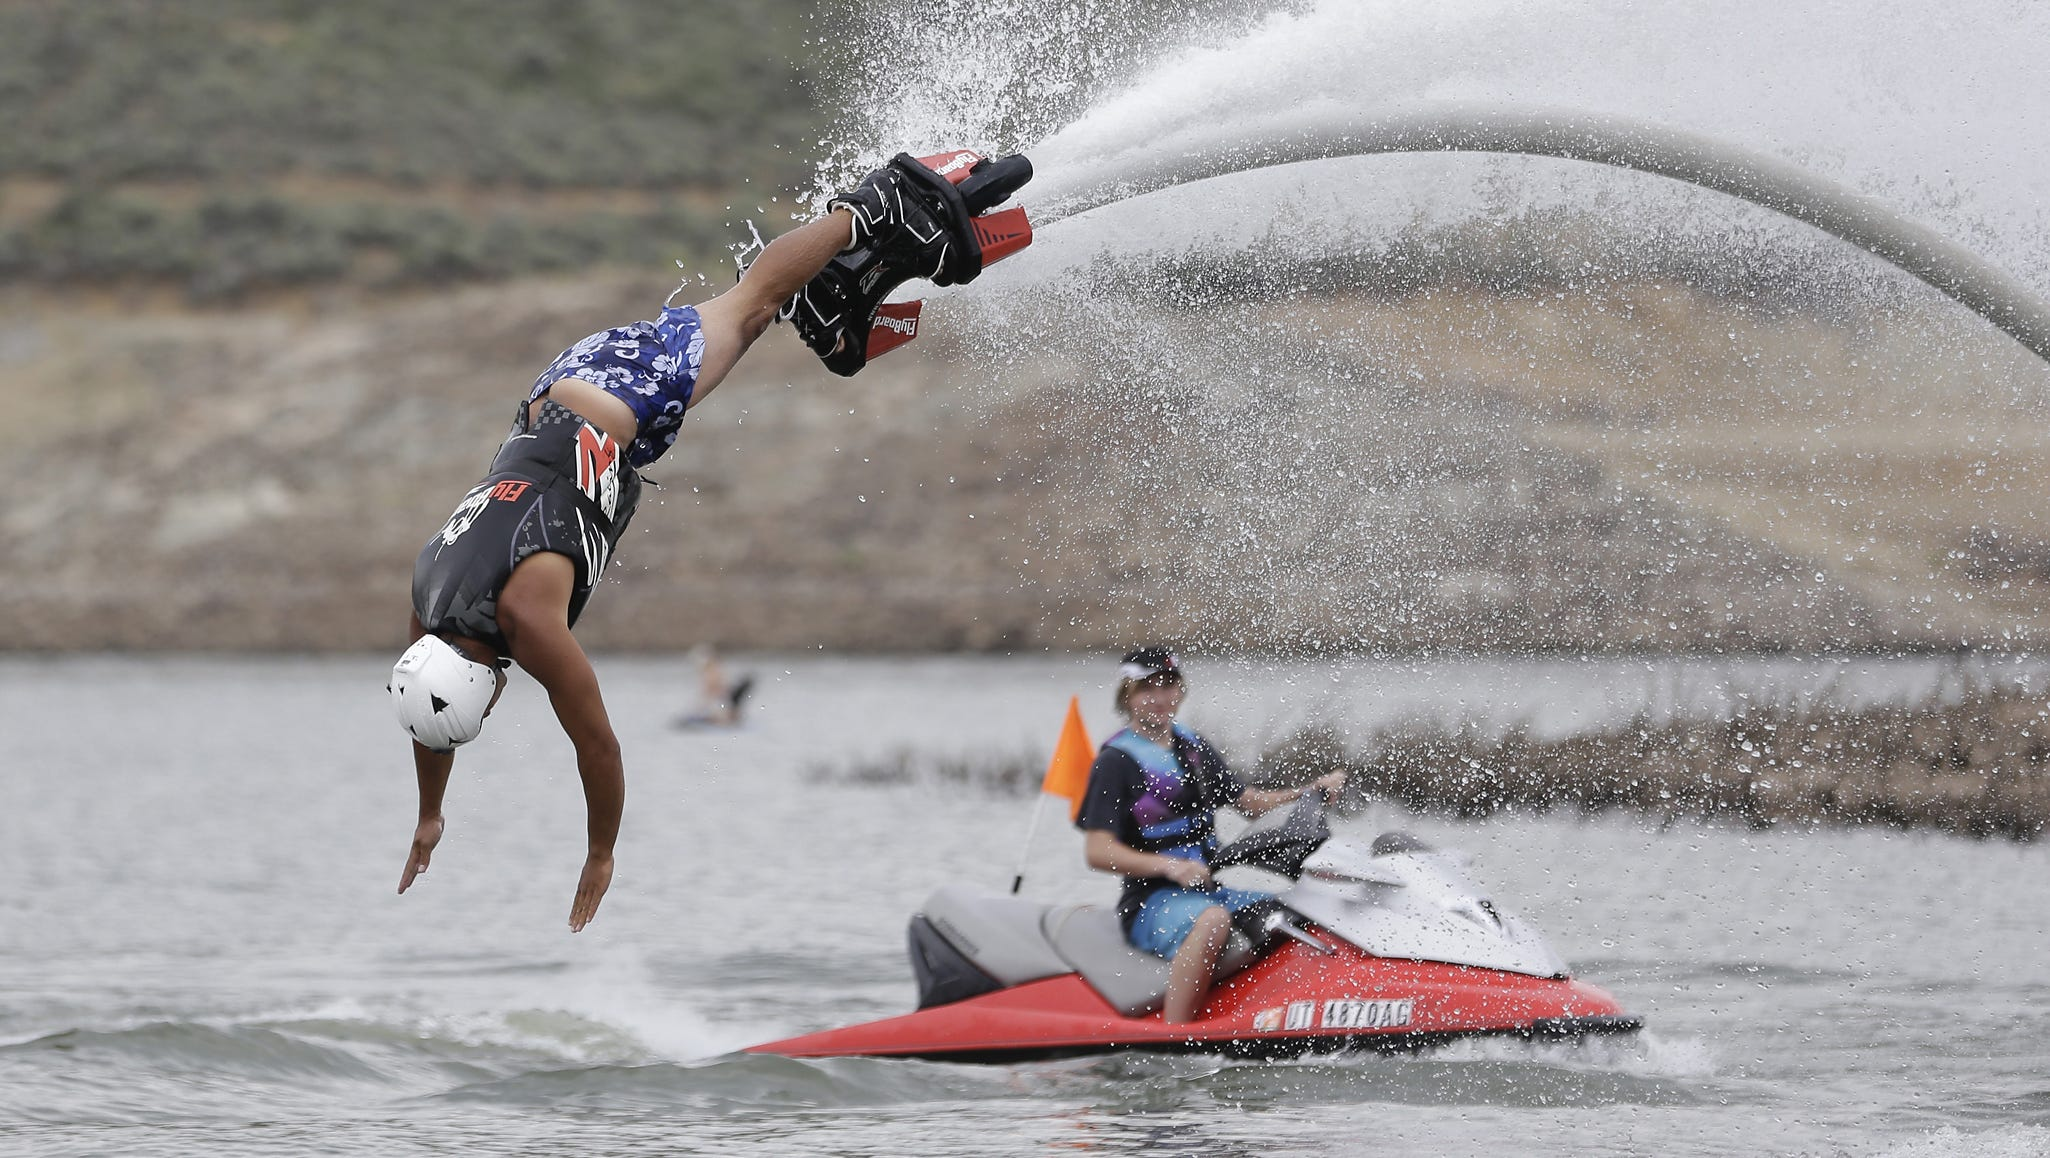 Jordan Wayment dives into the water as he demonstrates the flyboard.